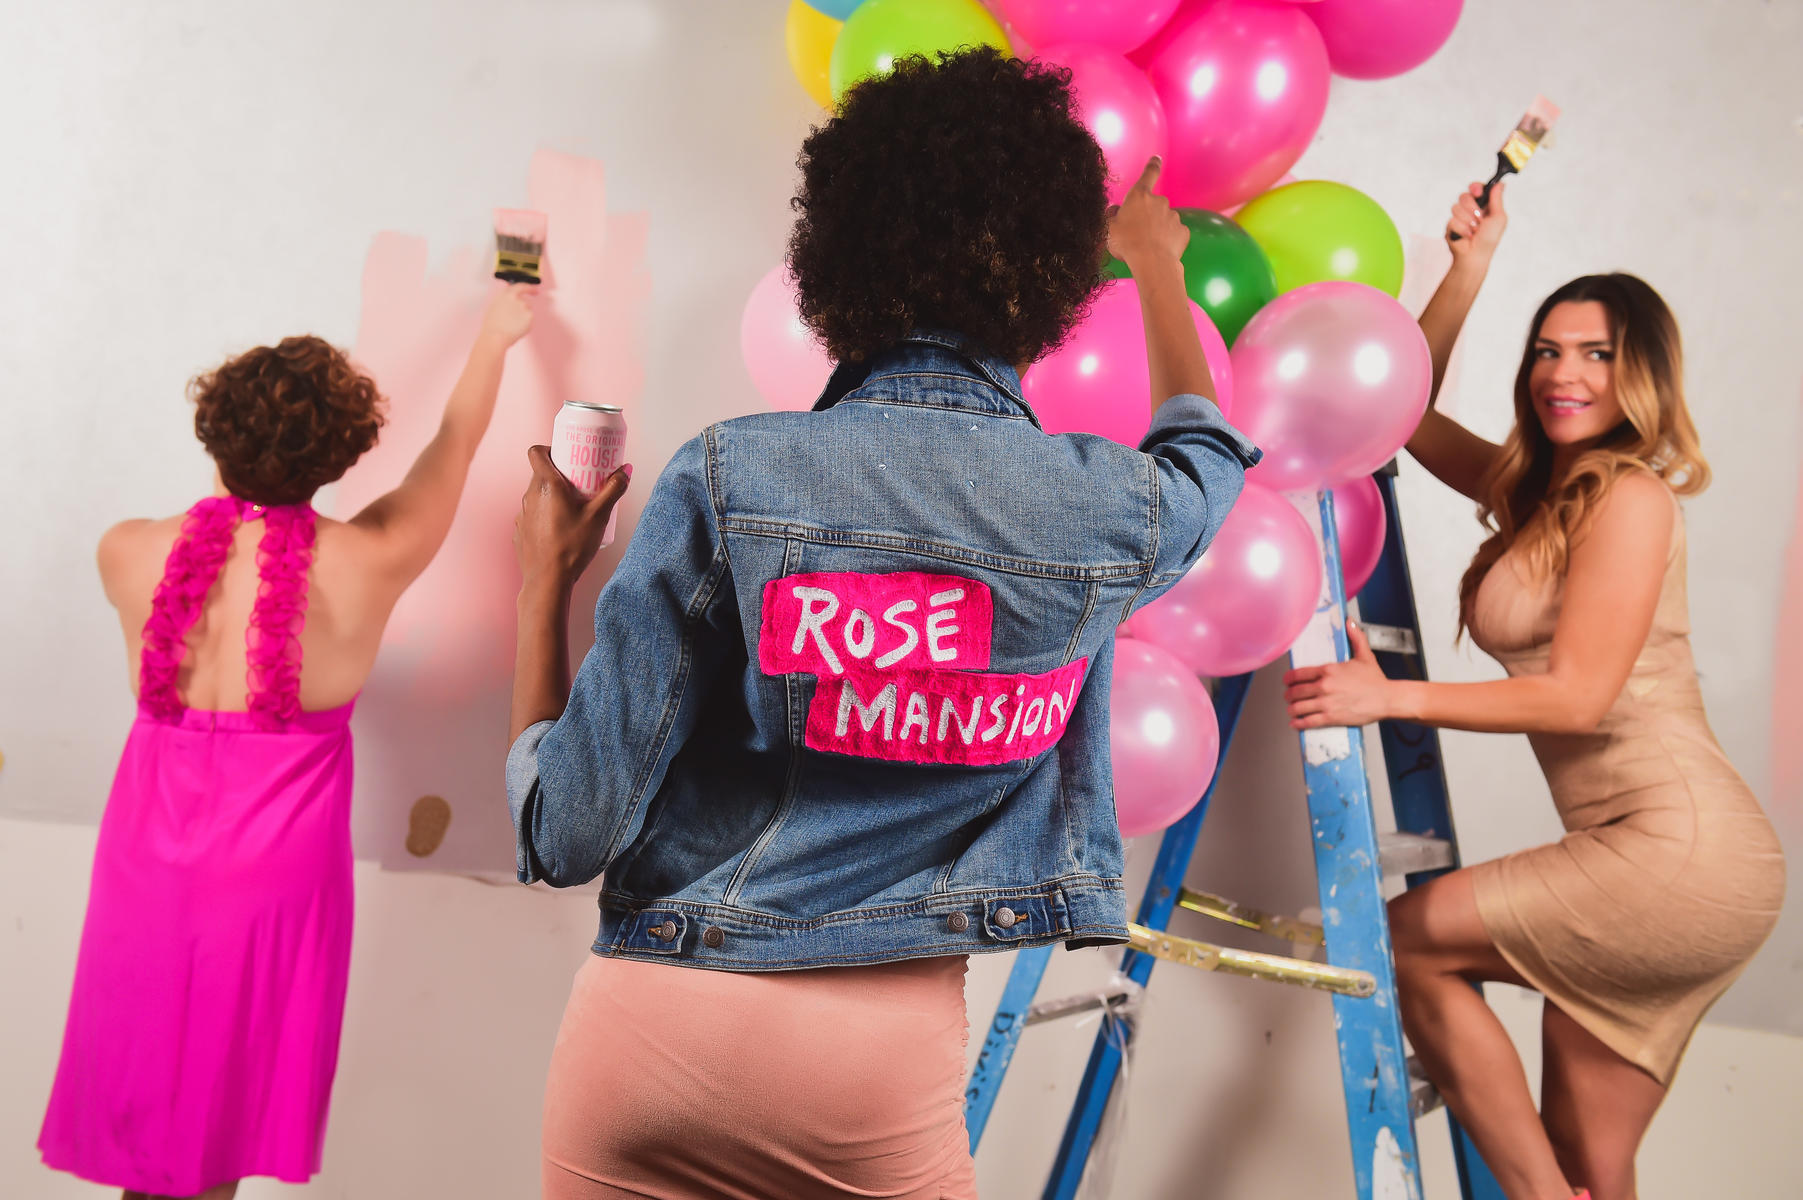 Max Flatow for Rosè Mansion 2